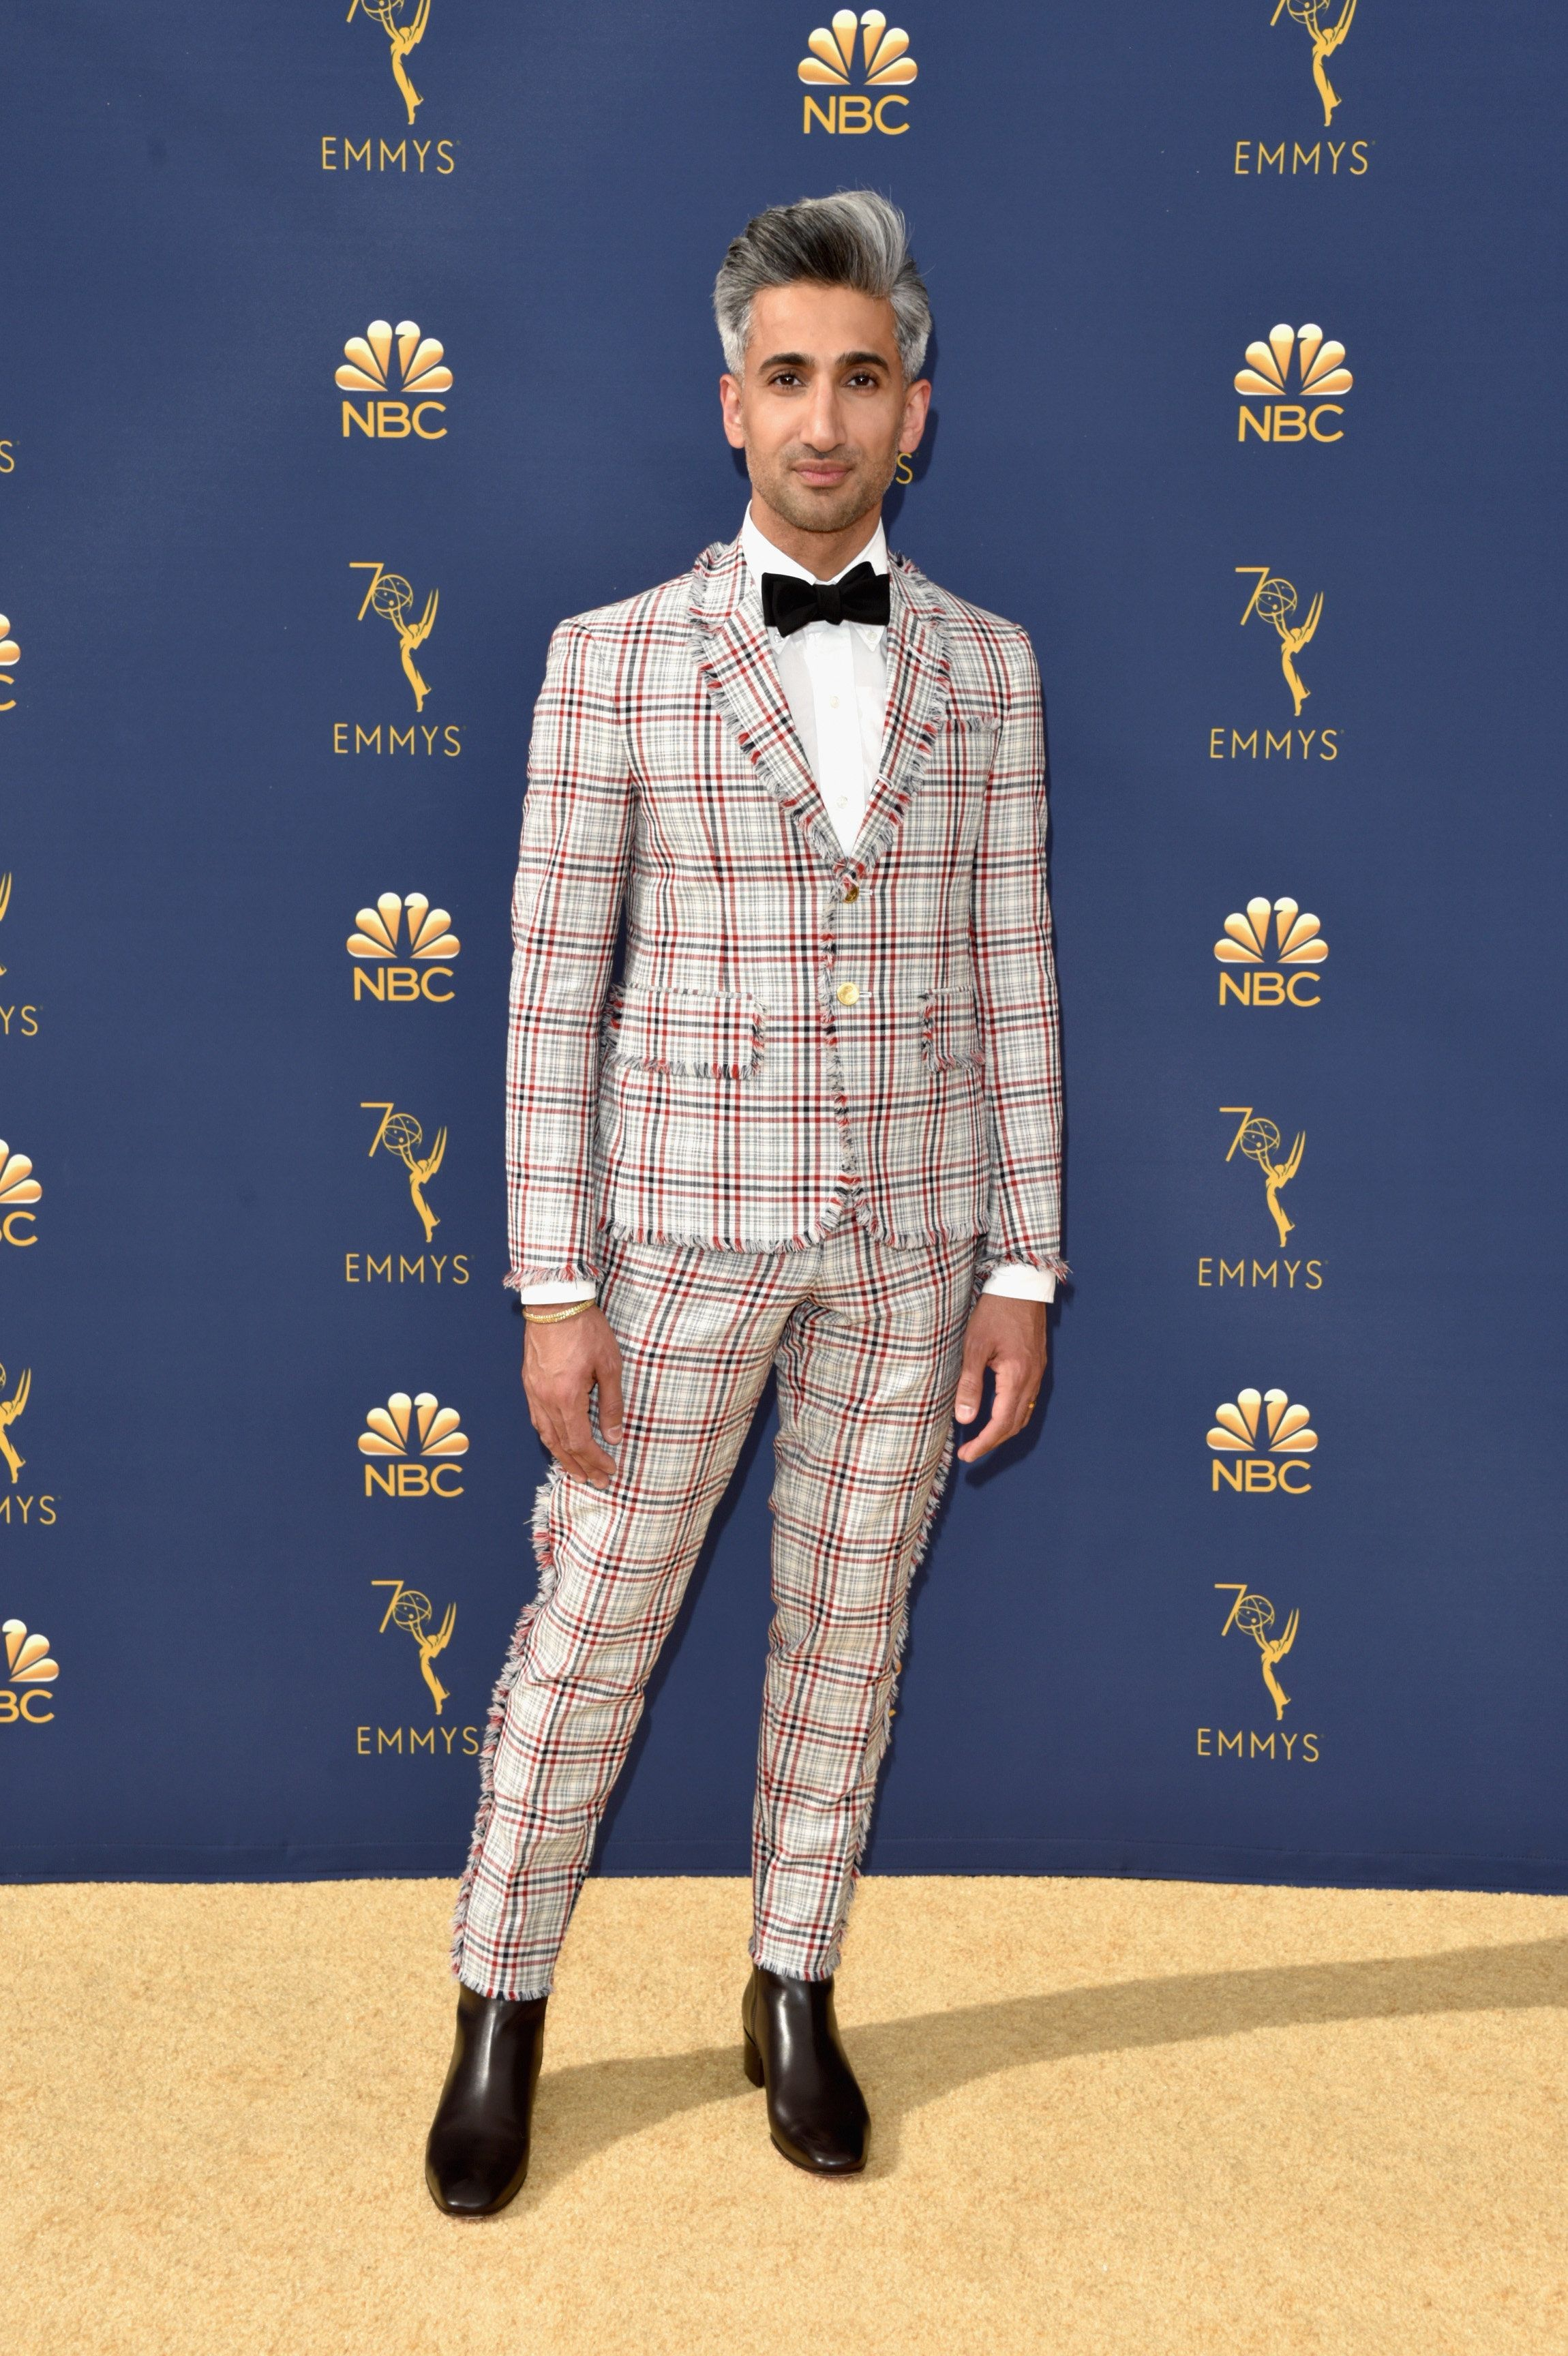 LOS ANGELES, CA - SEPTEMBER 17:  Tan France attends the 70th Emmy Awards at Microsoft Theater on September 17, 2018 in Los Angeles, California.  (Photo by John Shearer/Getty Images)